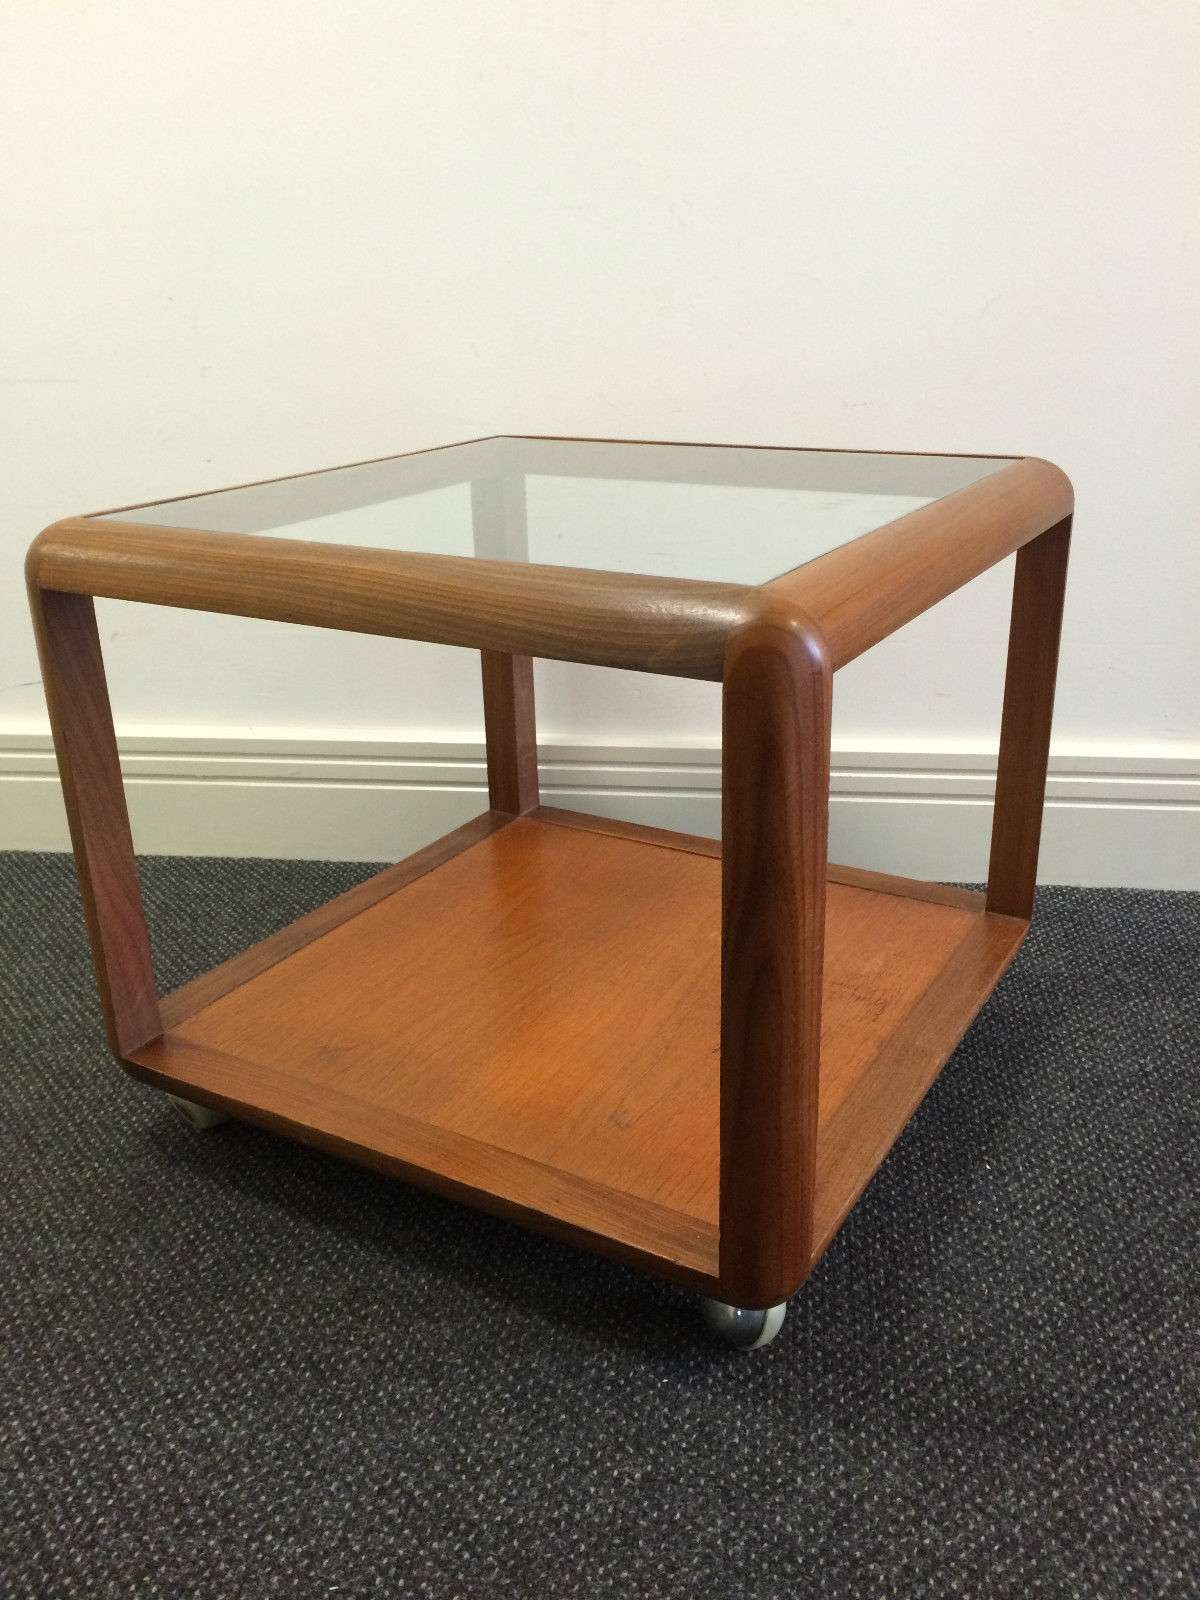 Trendy Retro Smoked Glass Coffee Tables With Regard To Furniture (View 20 of 20)